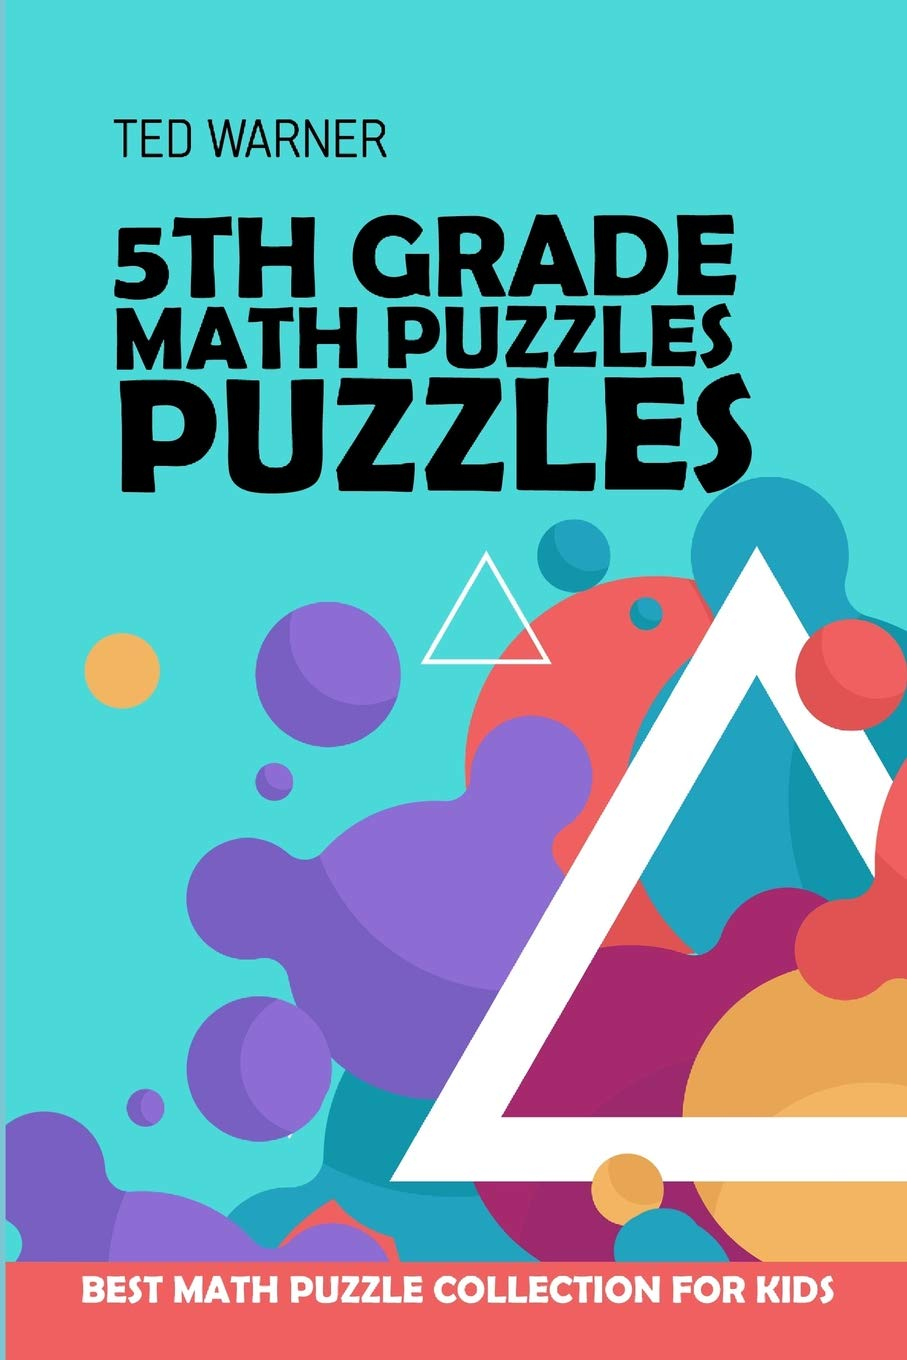 5th Grade Math Puzzles: Number Puzzles - Best Math Puzzle